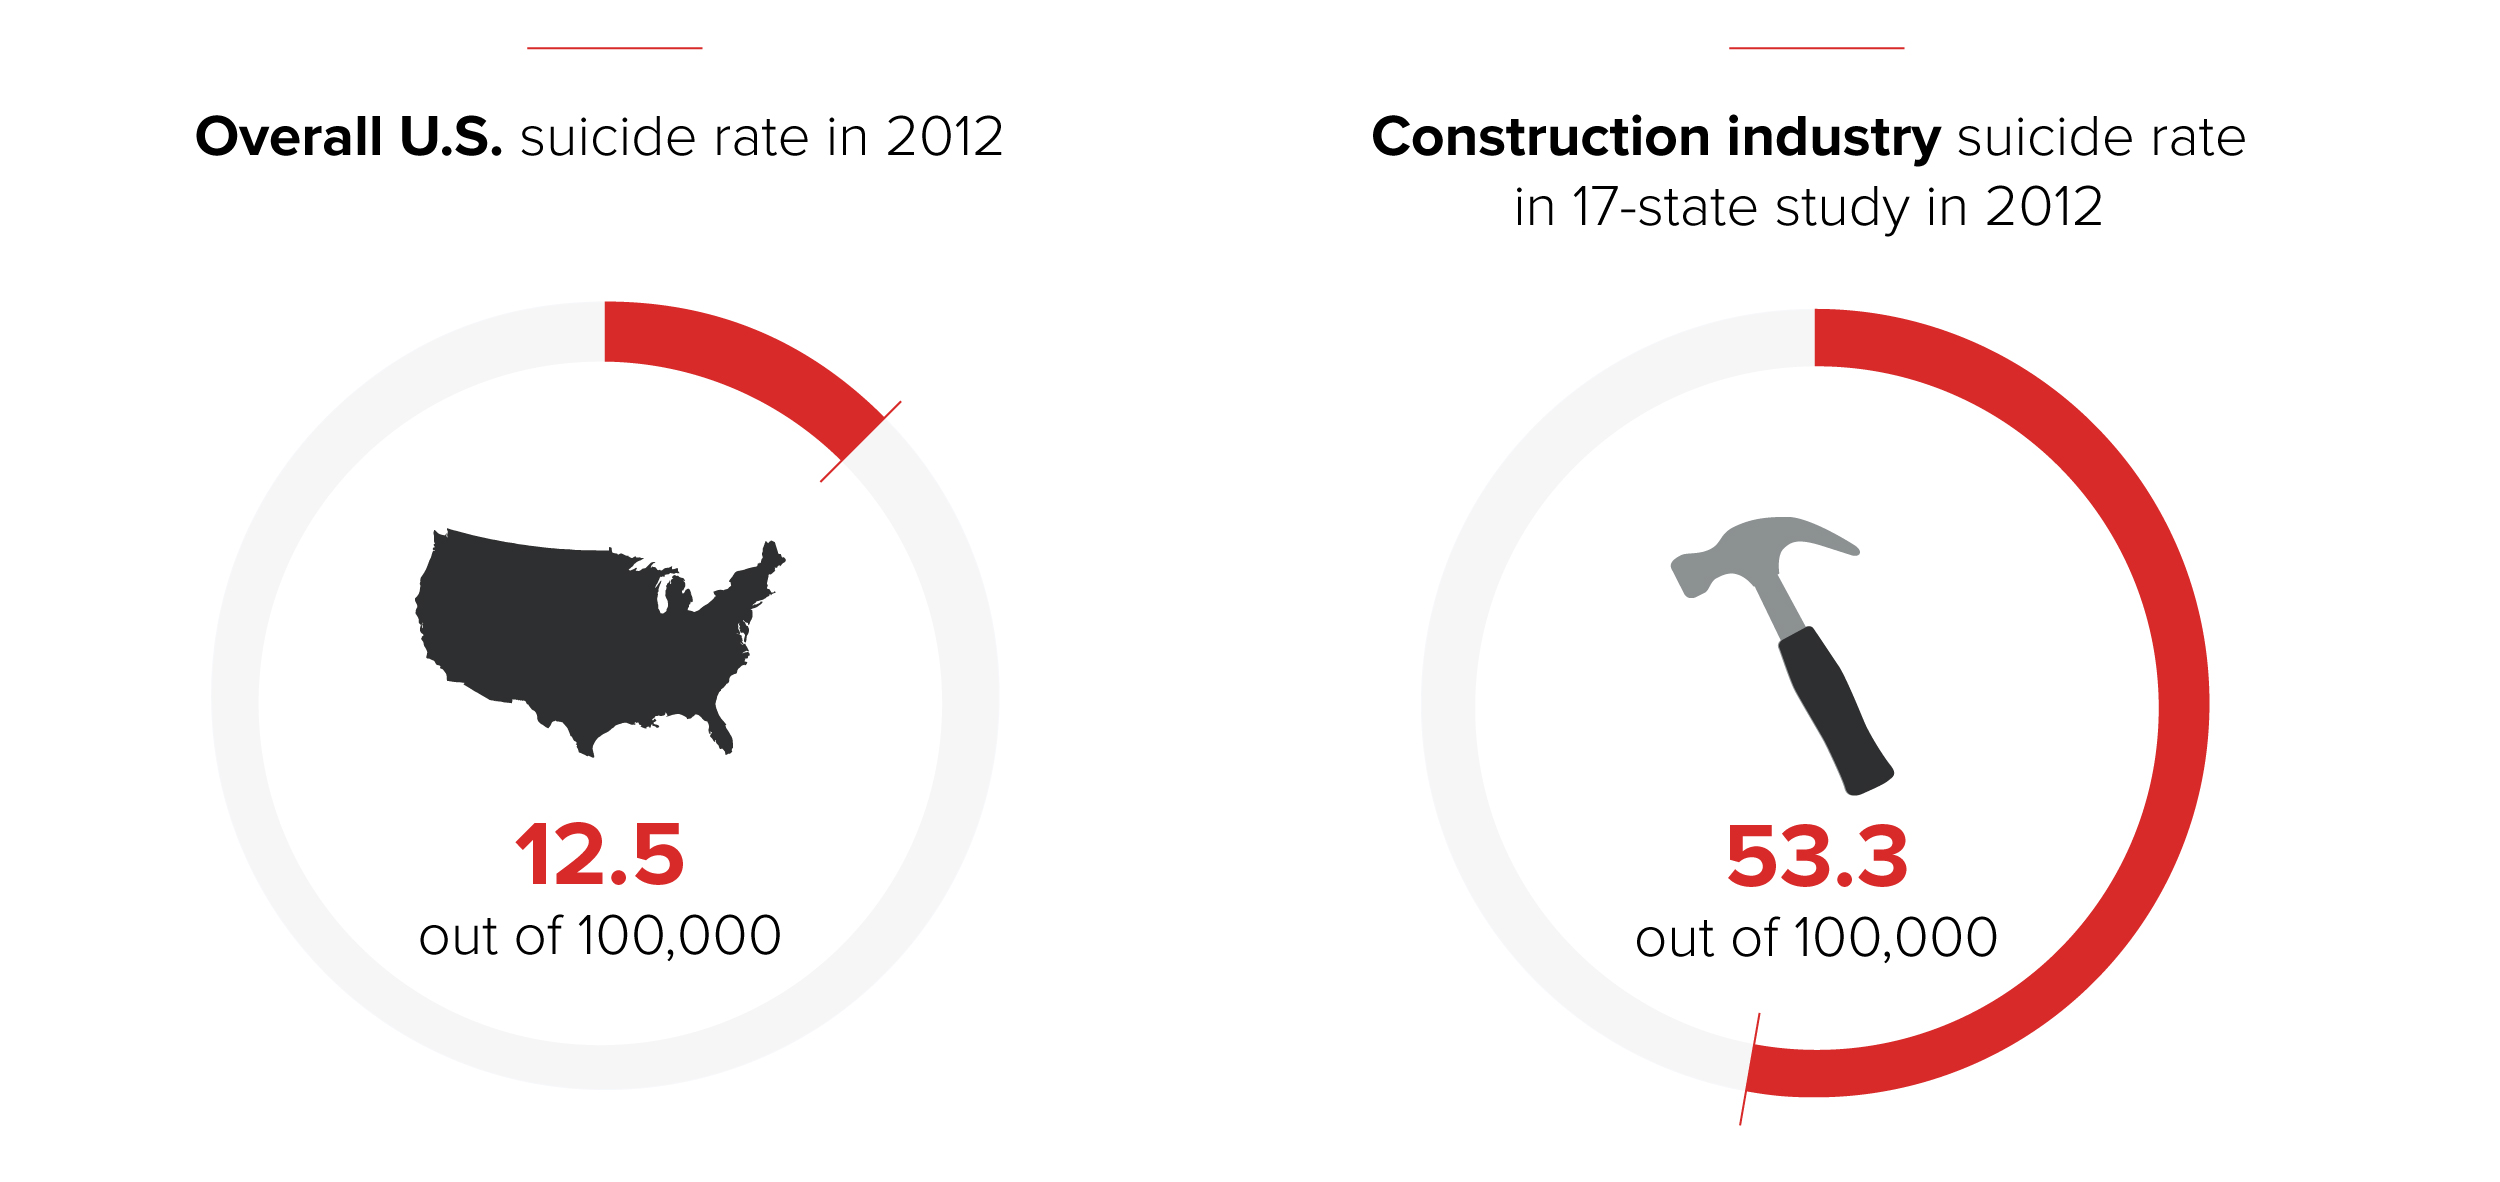 Construction industry suicide rate compared to overall suicide rate